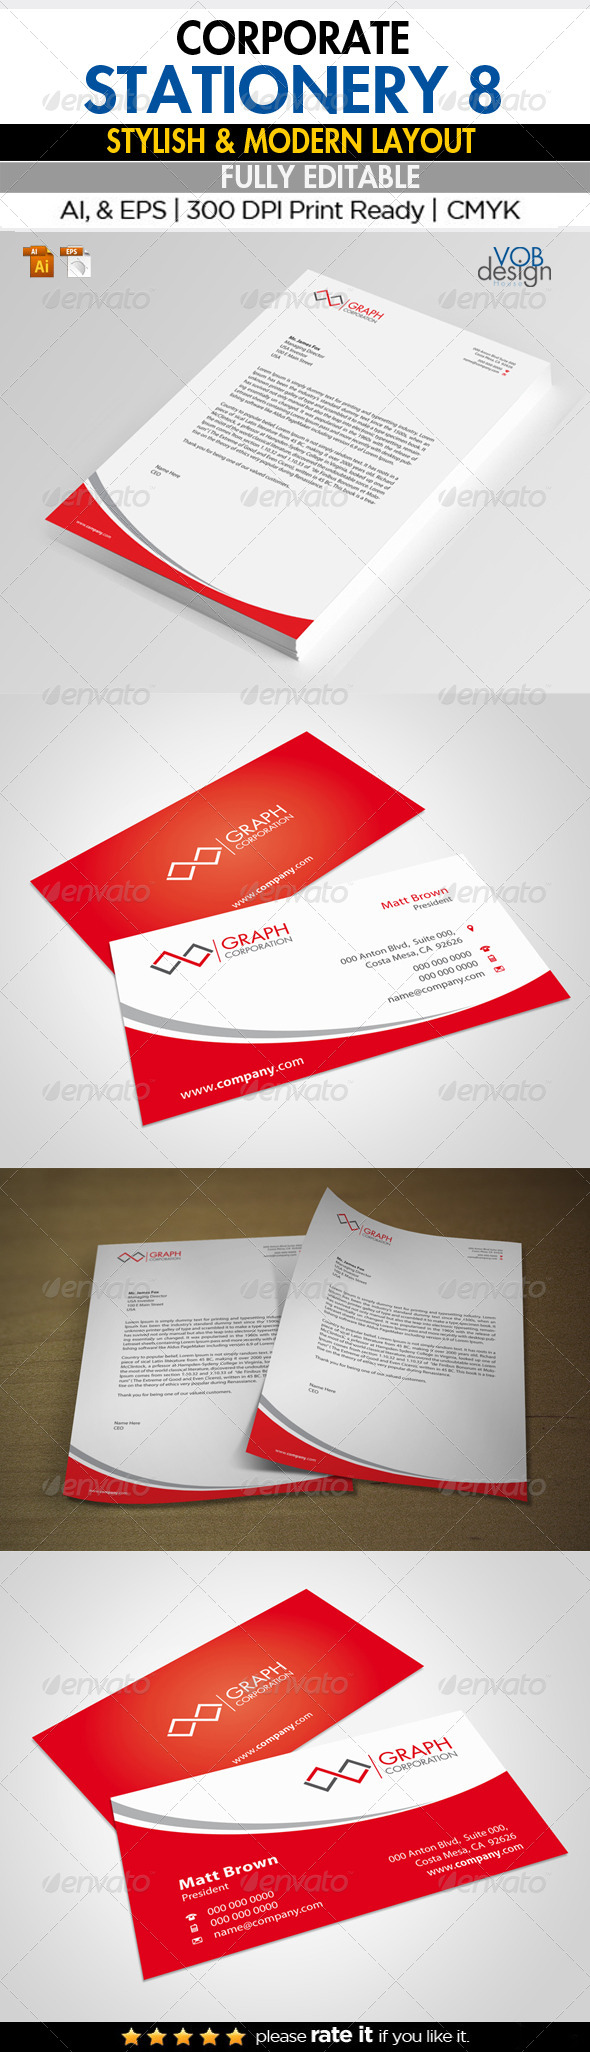 Corporate Stationery 8 - Stationery Print Templates